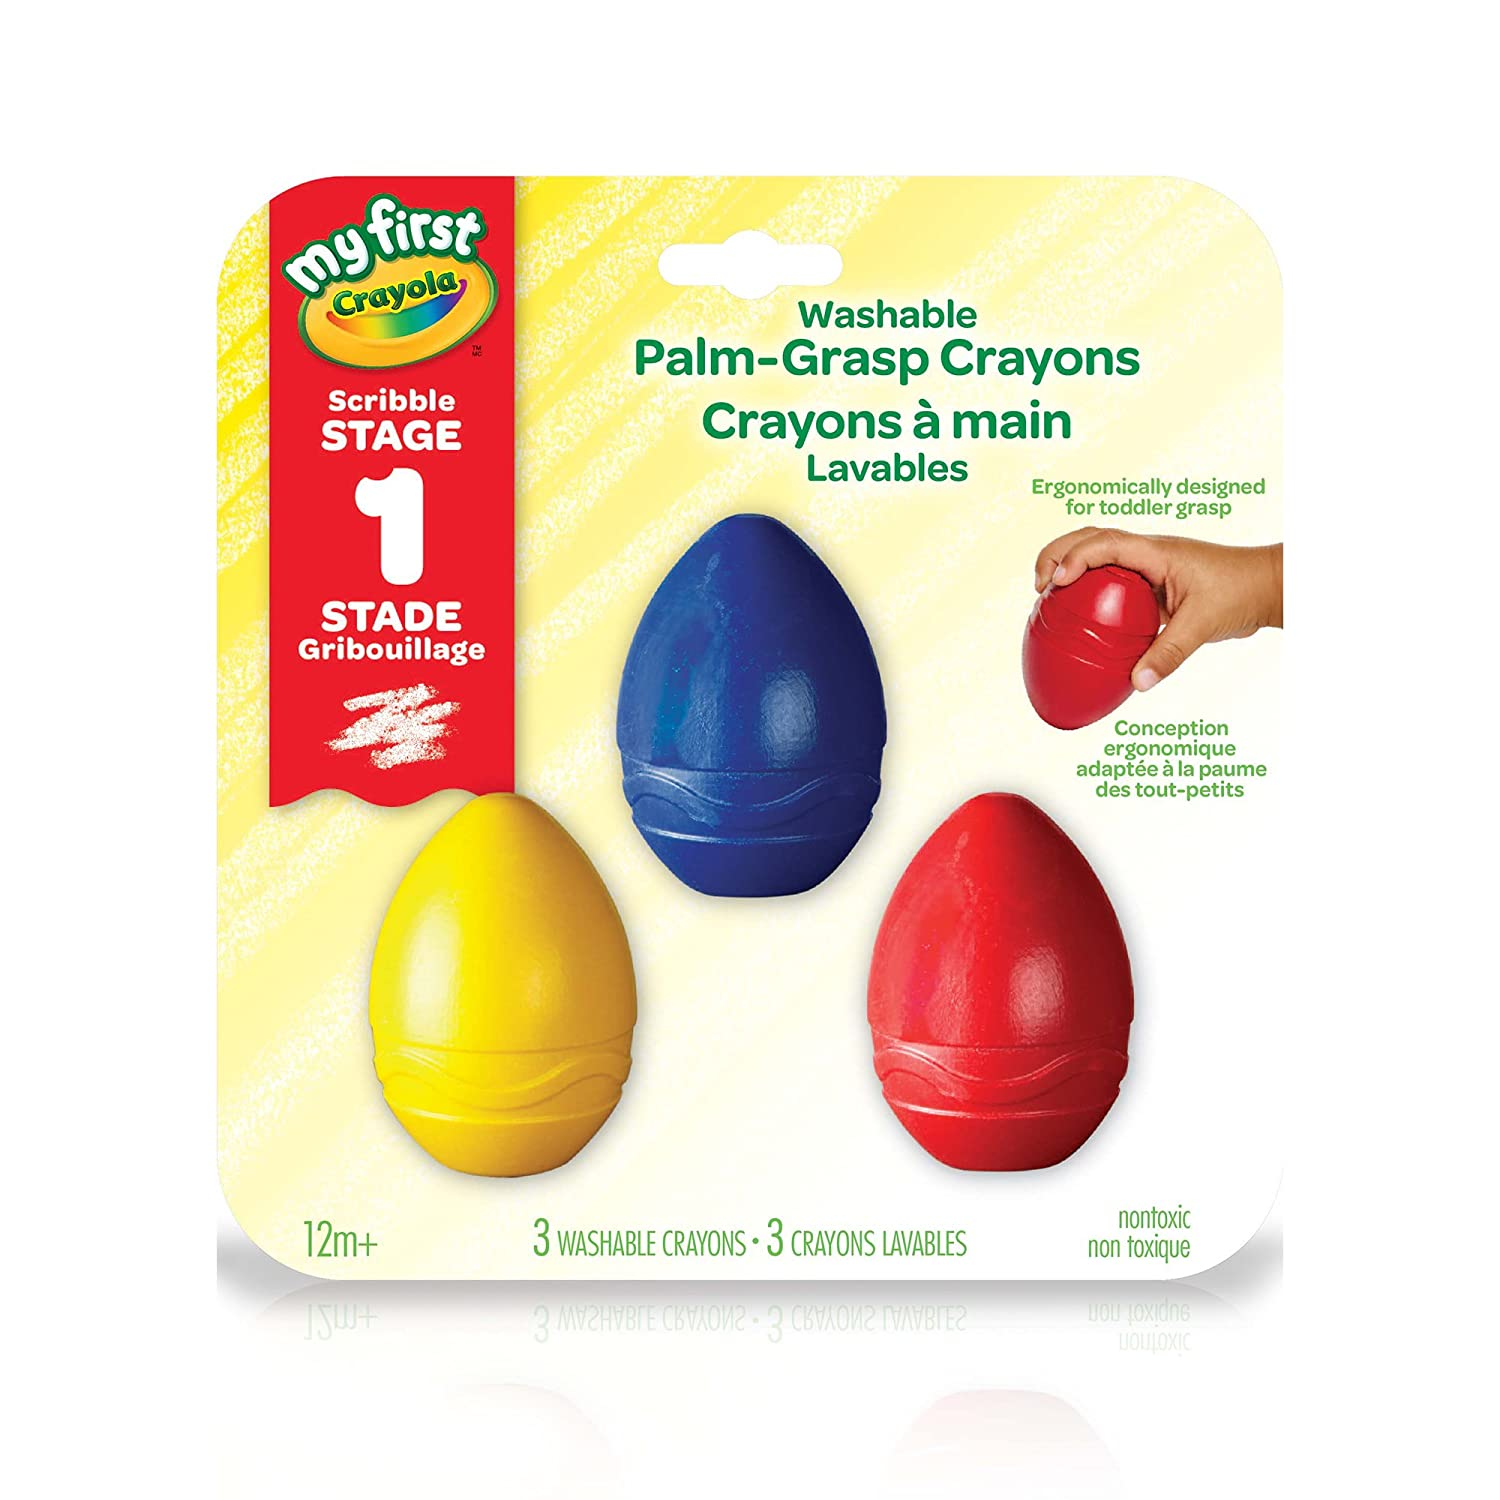 for Girls and Boys Mess-Free Portable Drawing Board Easter Gift Crayola My First Touch Lights 5,6 and Up Art Supplies for Toddlers Stocking Stuffers Gift for Boys and Girls Kids 4 Easter Basket Stuffers Ages 3 Arts and Crafts Holiday Gifting